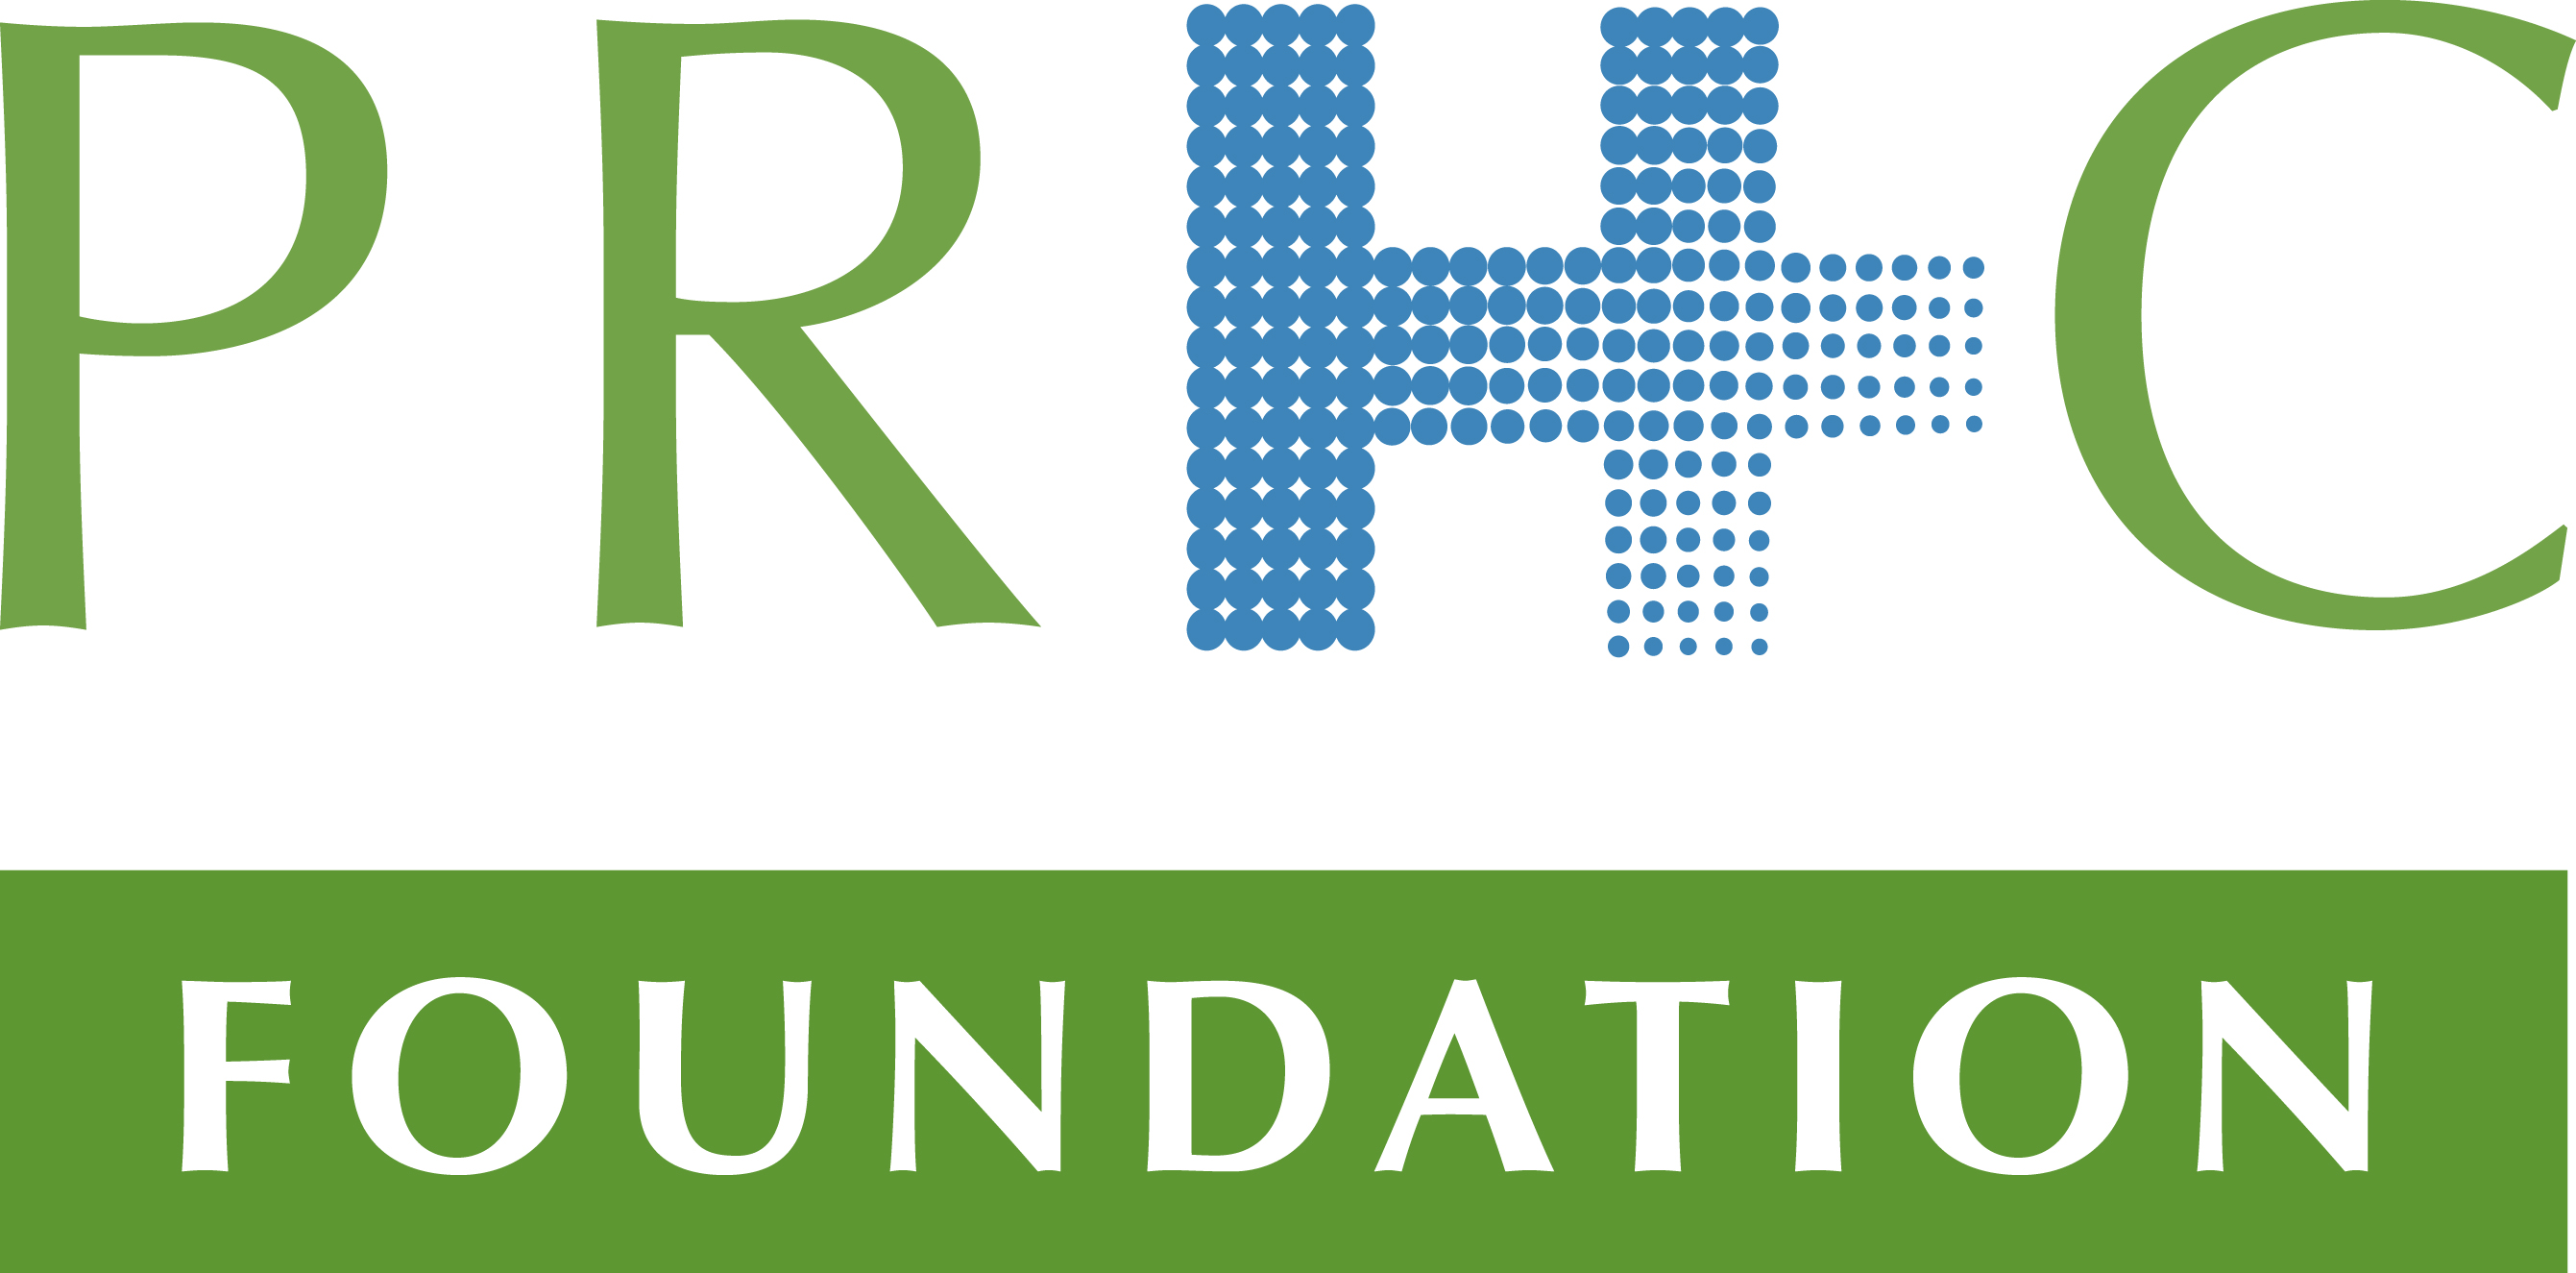 PRHCFoundation_Colour_HighRes.jpg